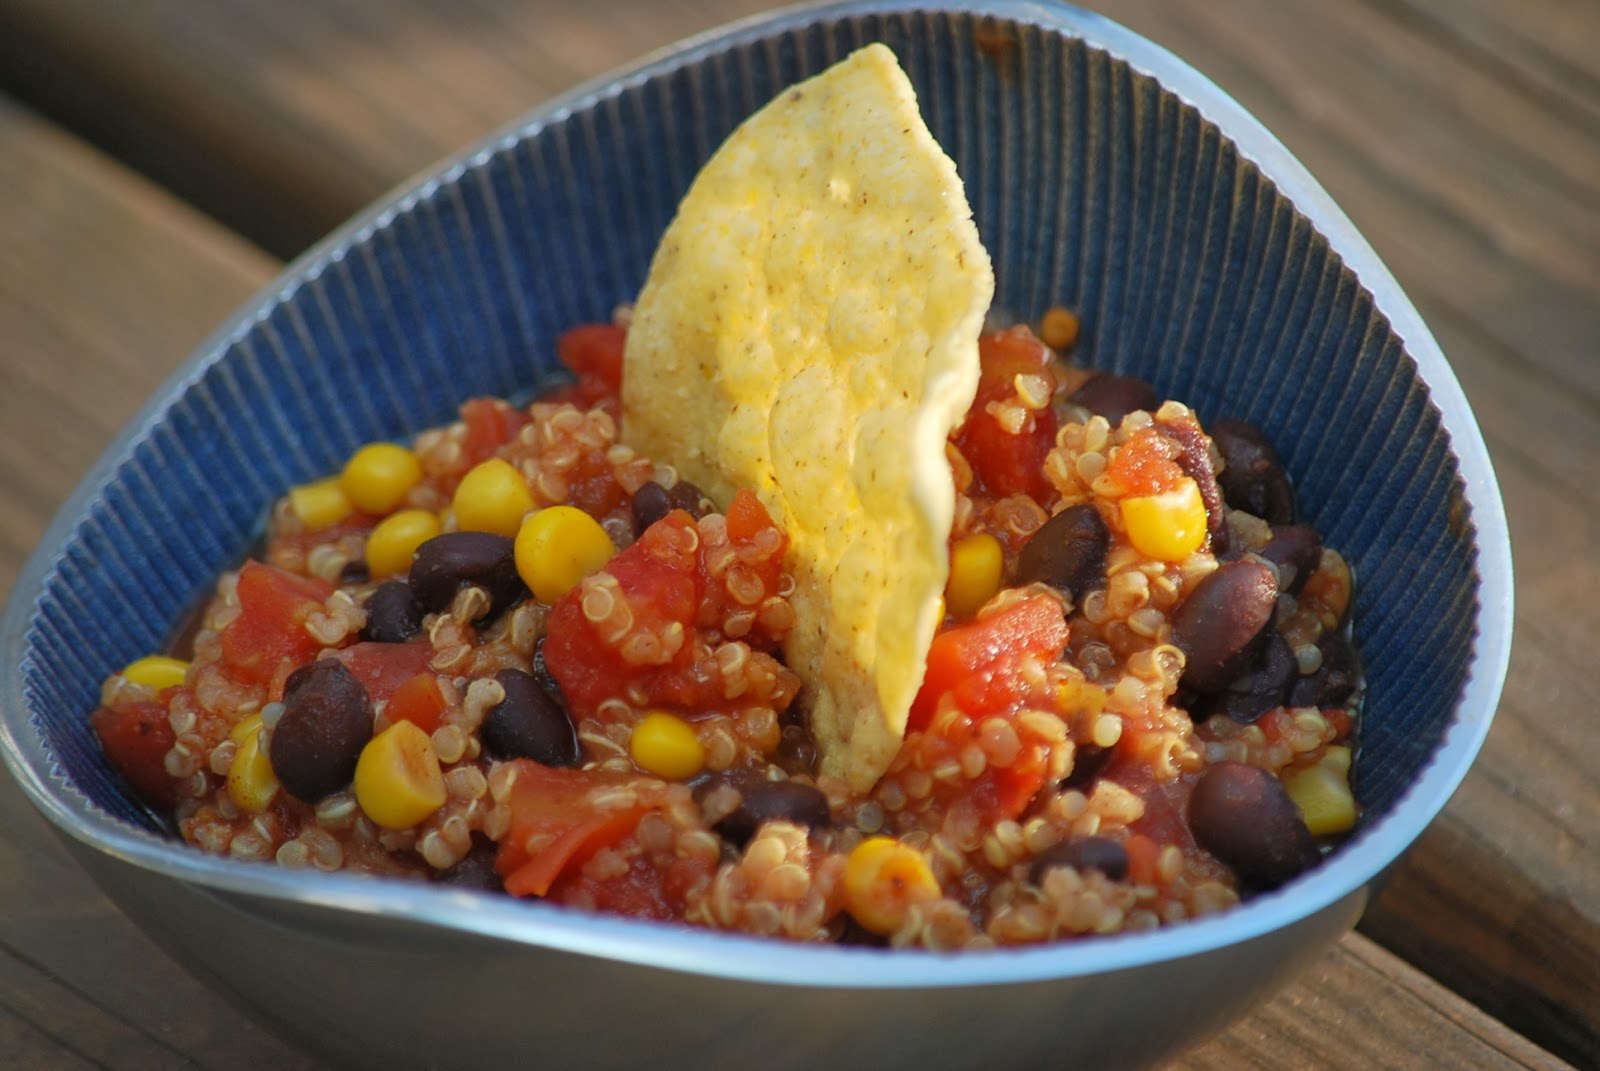 My story in recipes: Slow Cooker Quinoa Chili